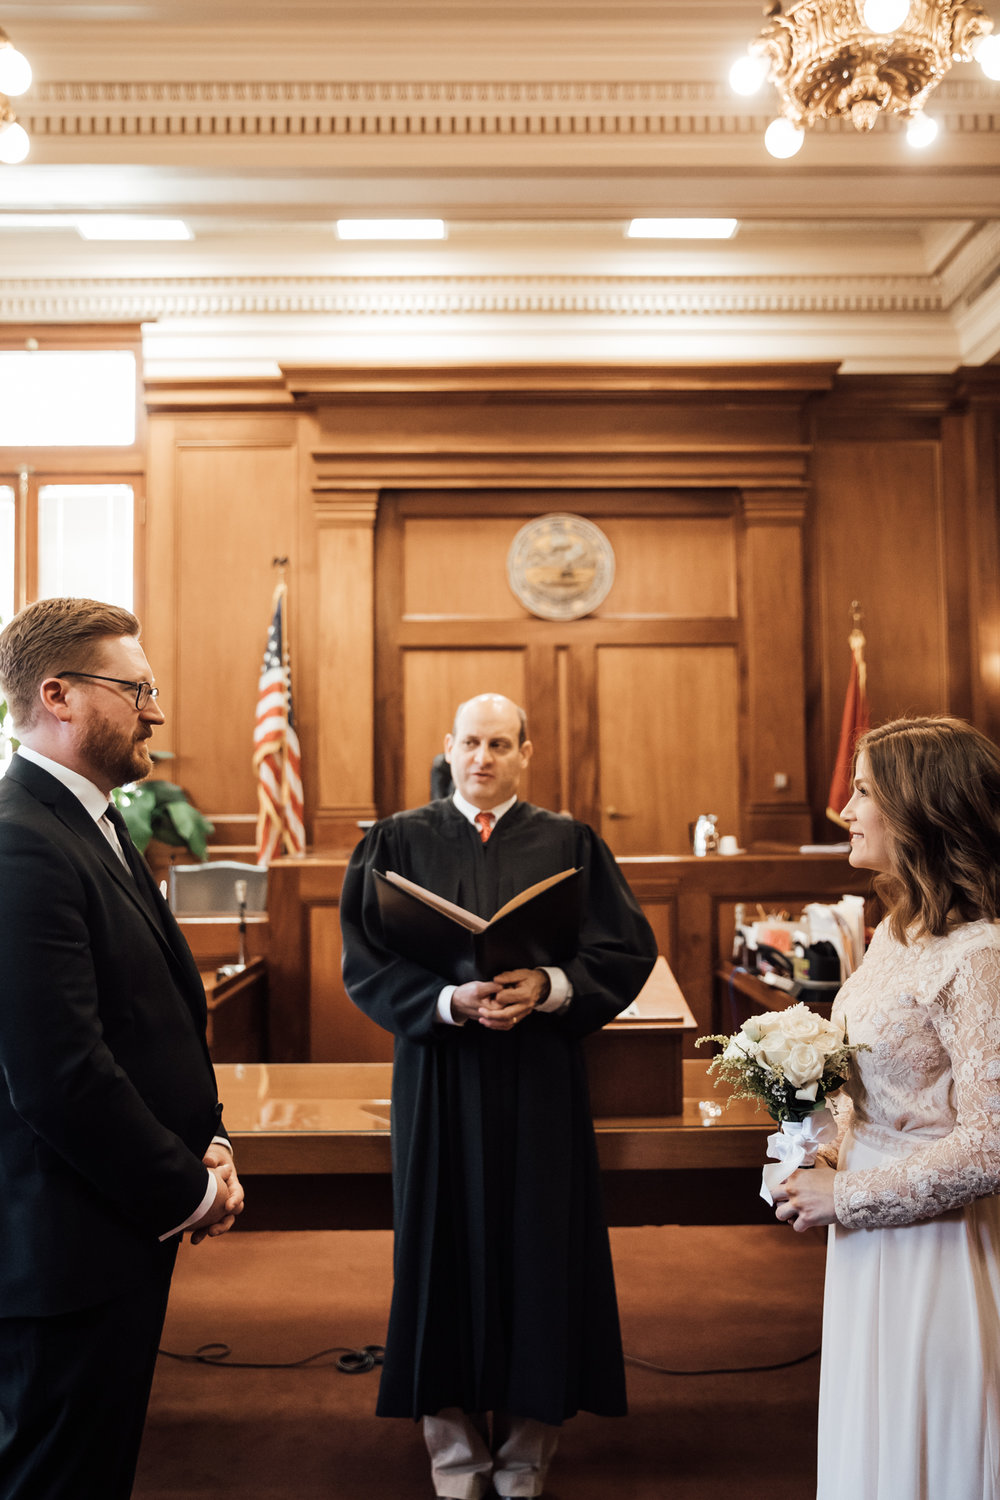 memphis-courthouse-elopement-thewarmtharoundyou-amanda-michael (7 of 143).jpg